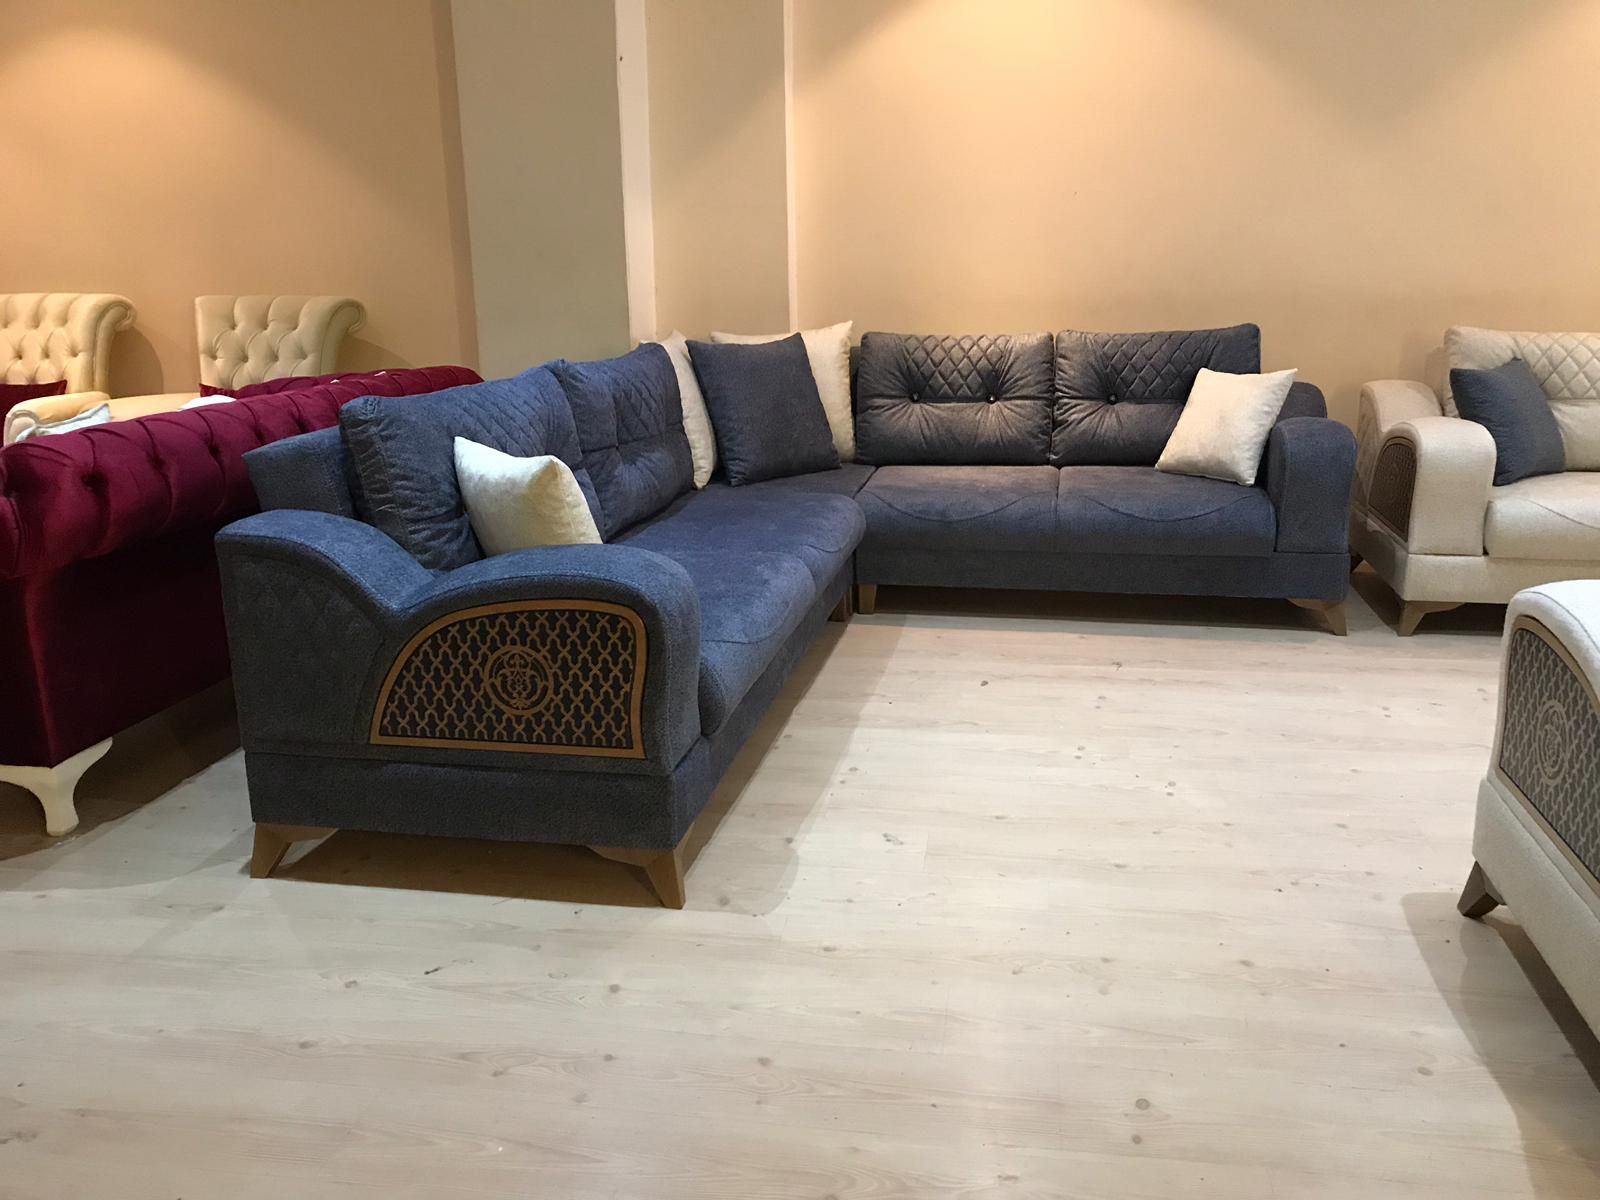 Defne Kose Takimi Sectional Couch Home Decor Furniture